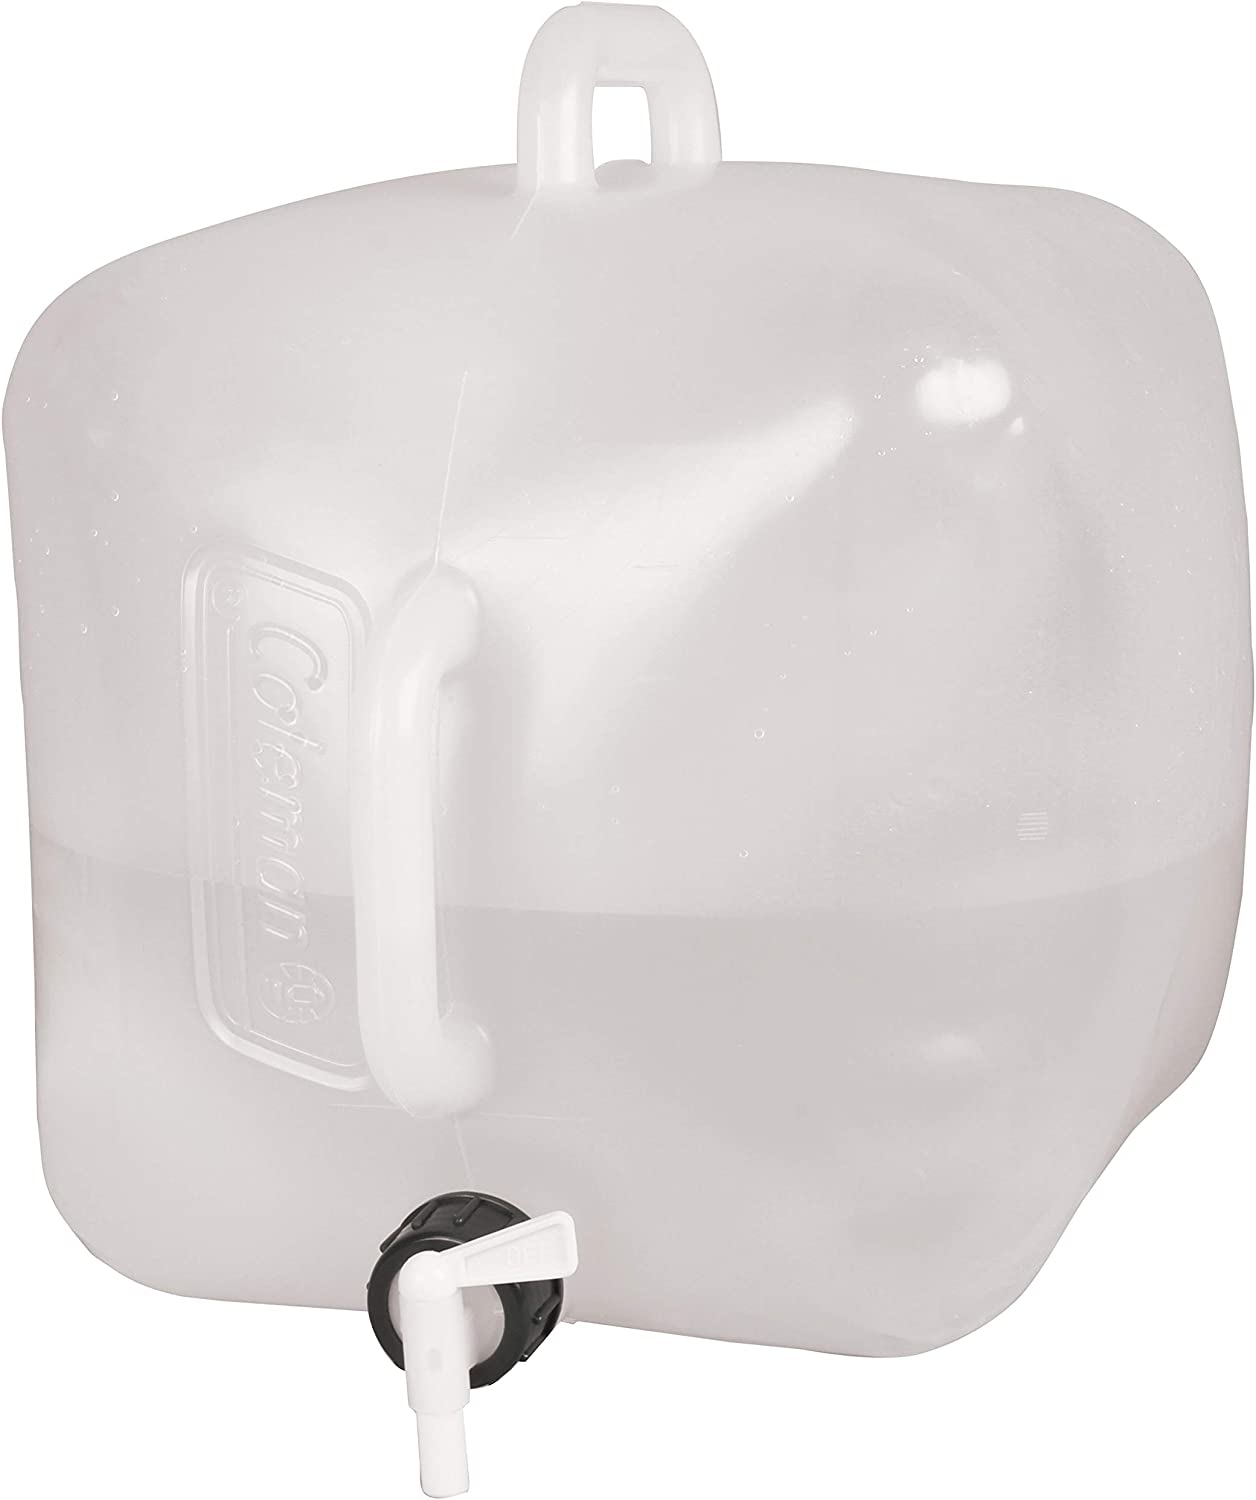 Best Camping Water Containers 4